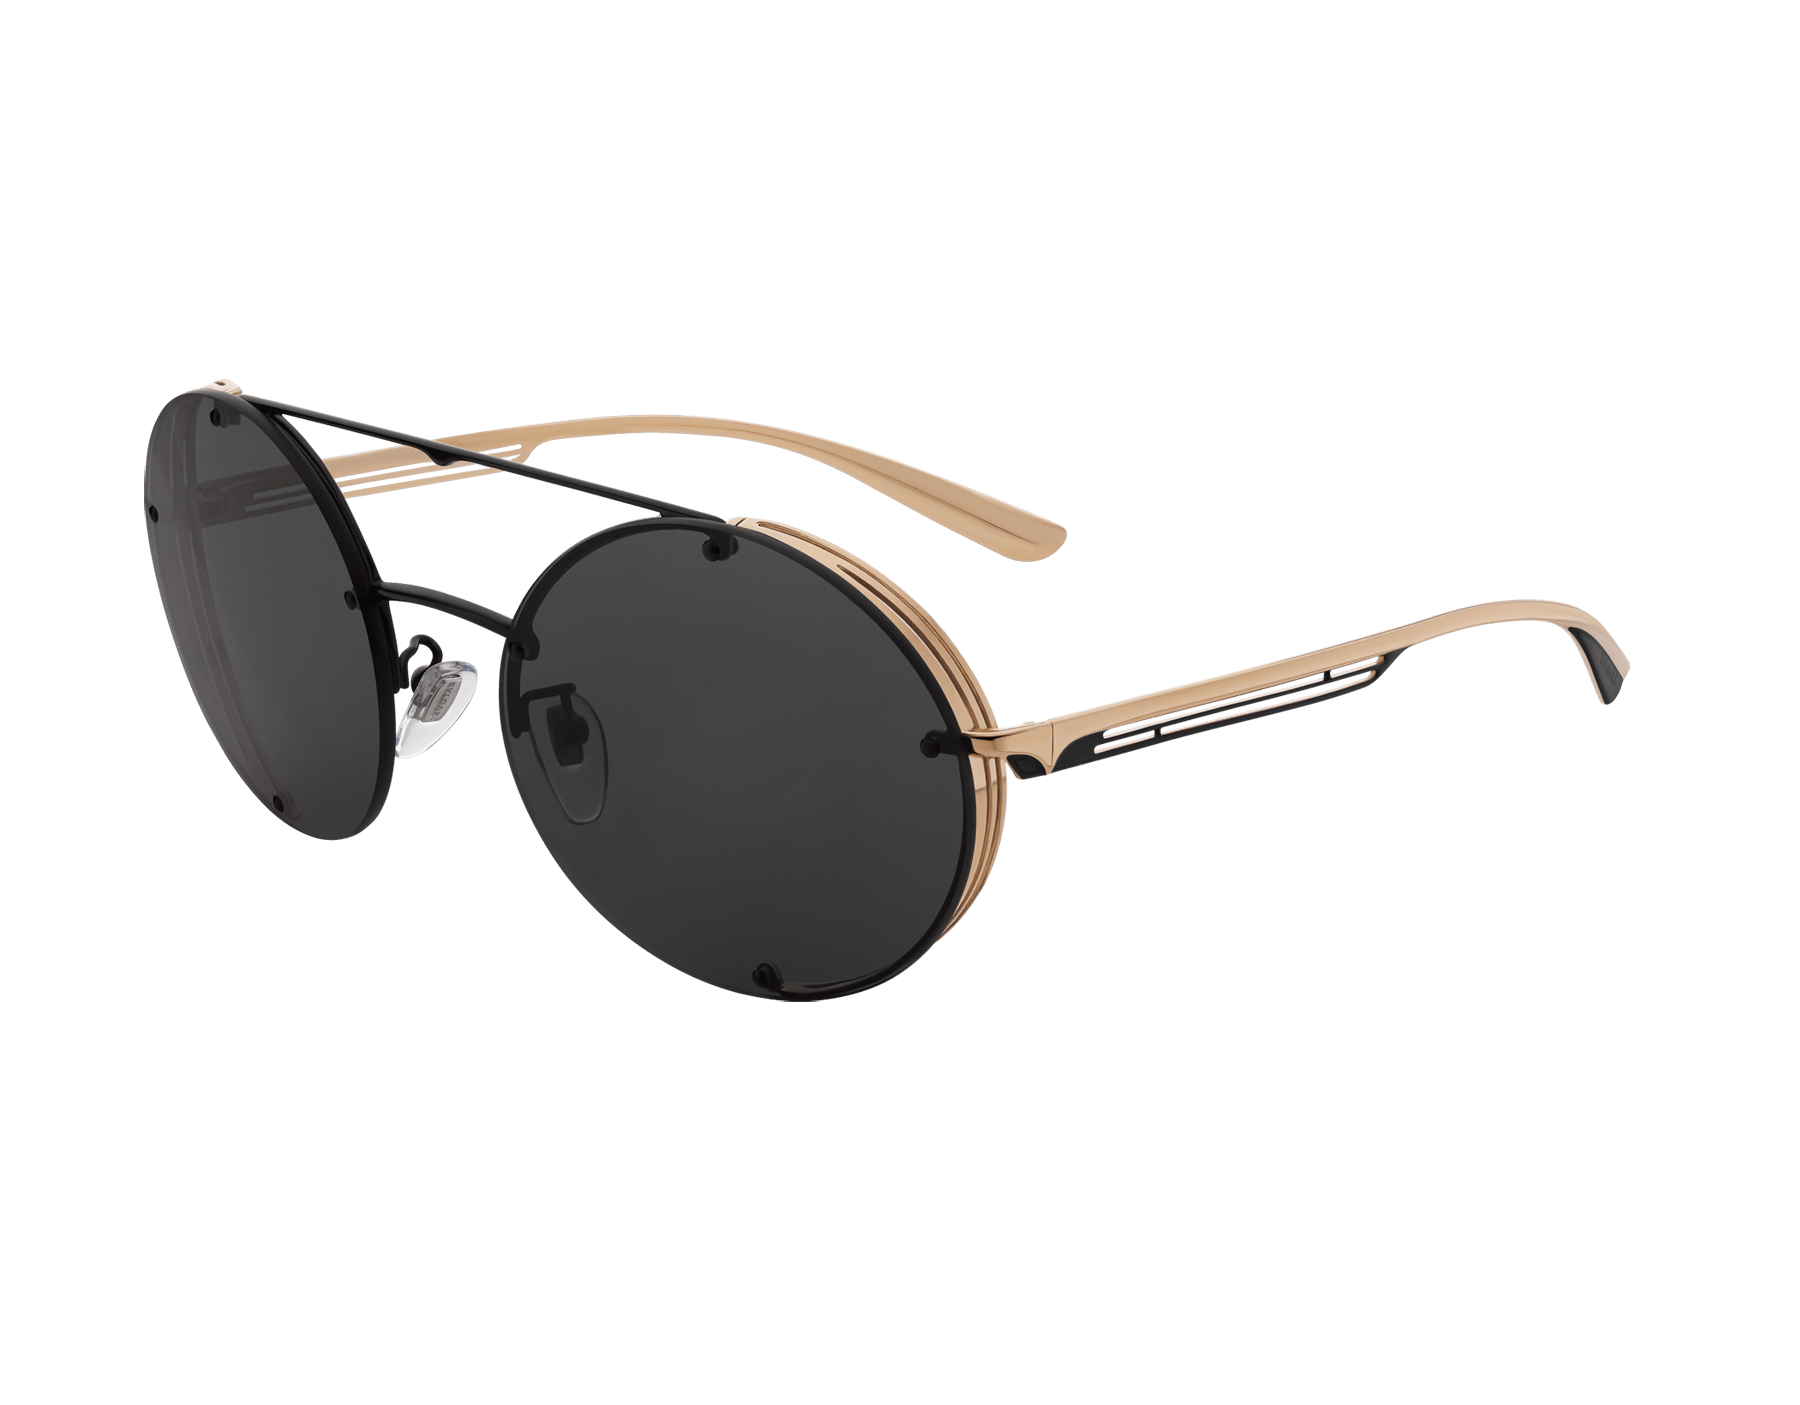 Bvlgari B.zero1 B.flyingstripe round metal aviator sunglasses. 903818 image 1